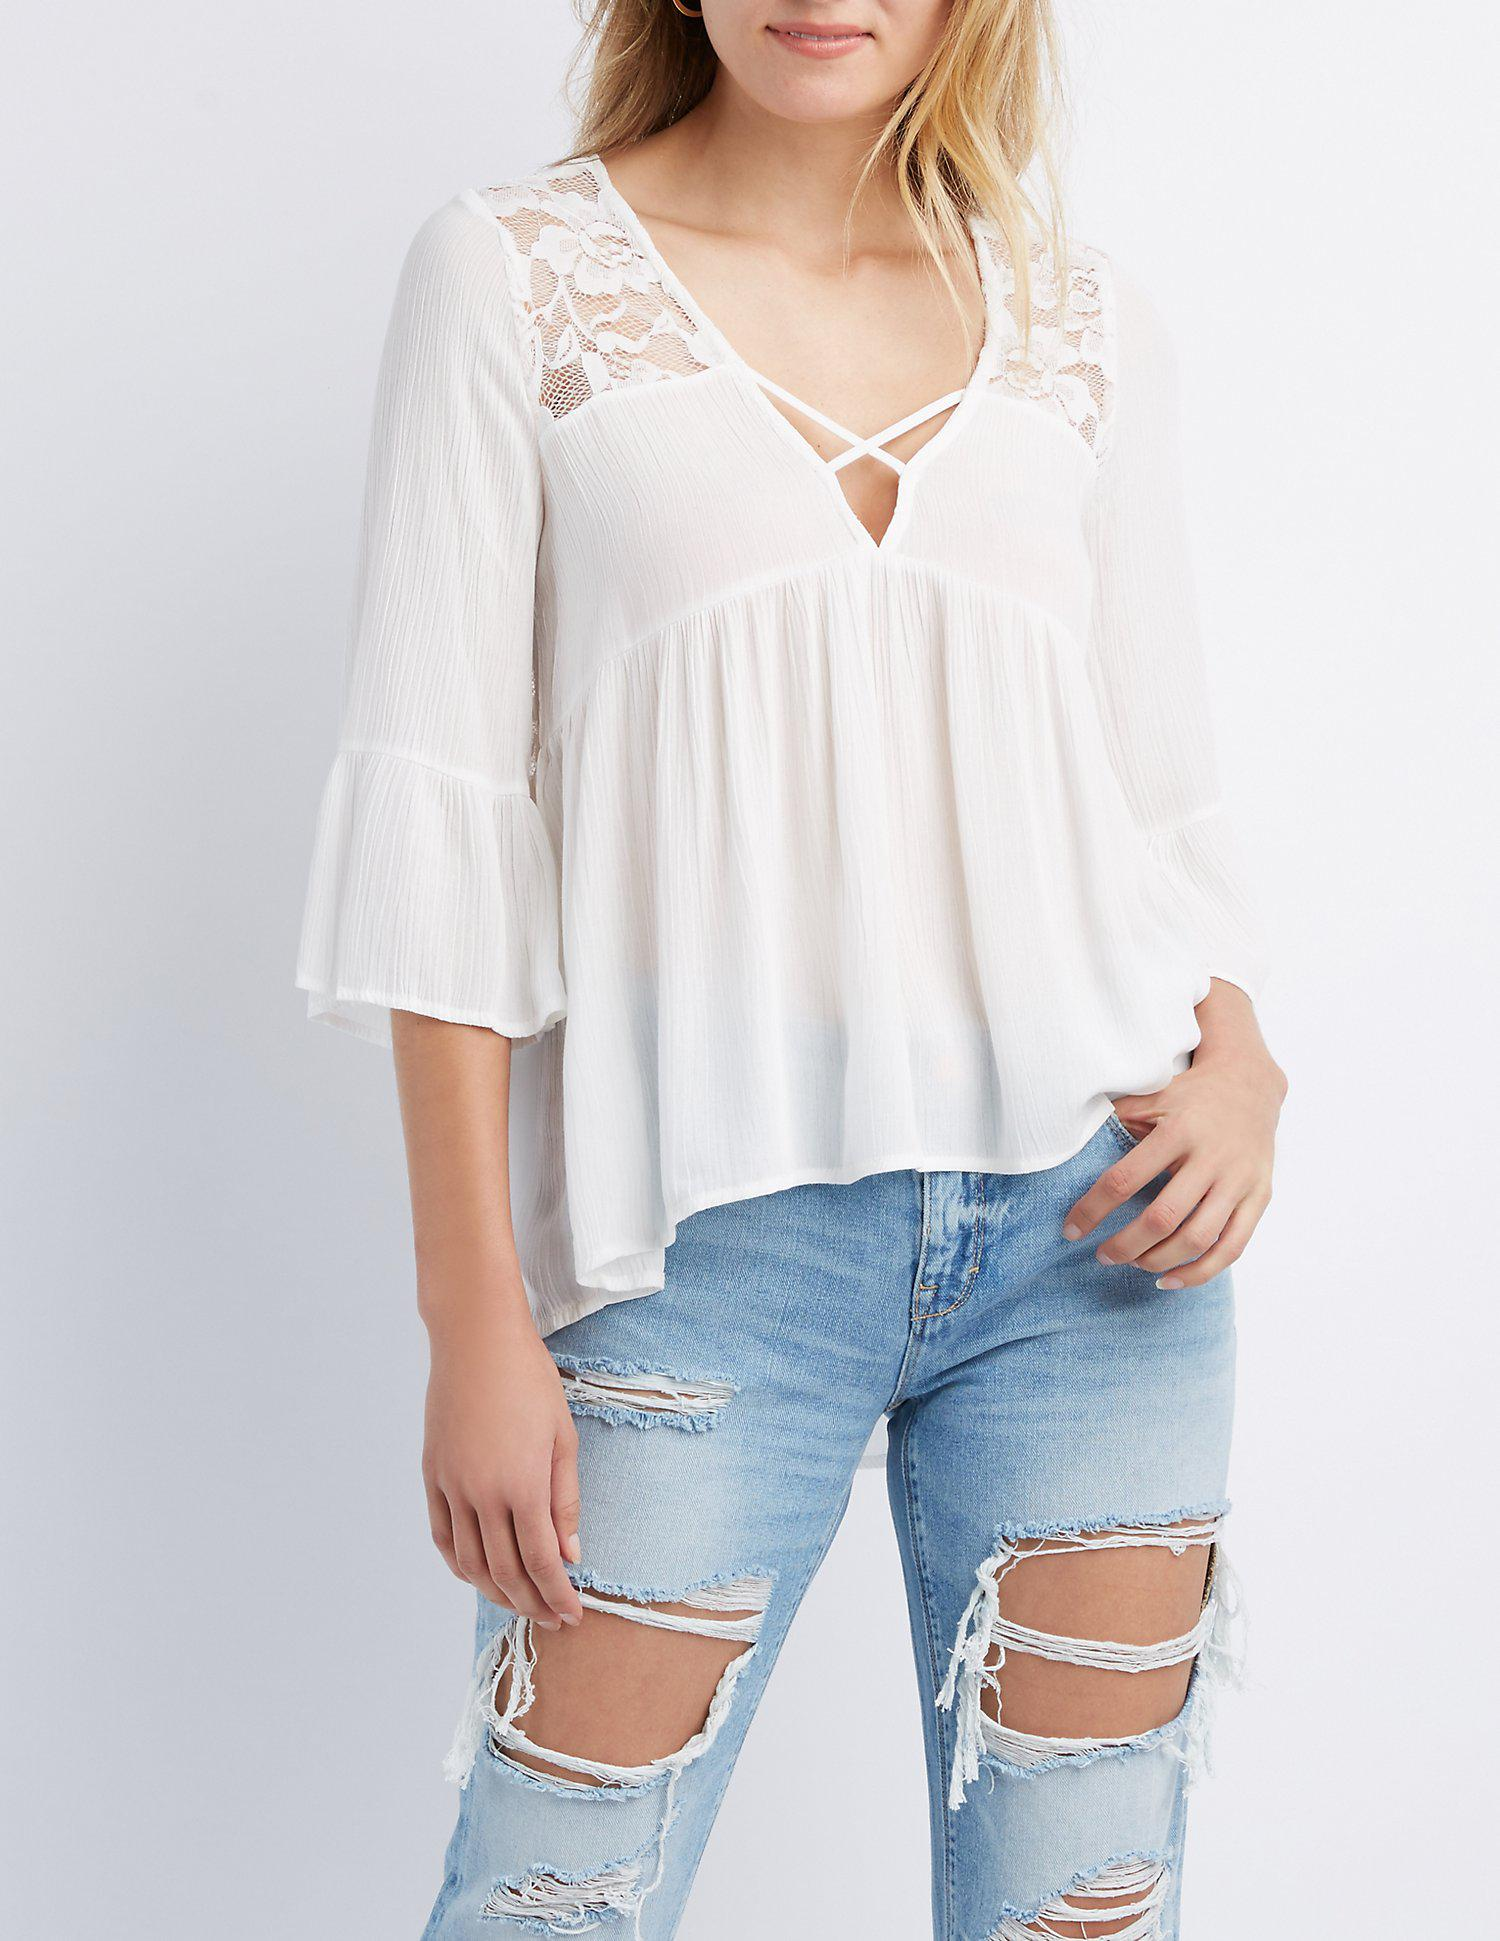 605808658af Lyst - Charlotte Russe Lace-trim Bell Sleeve Top in White